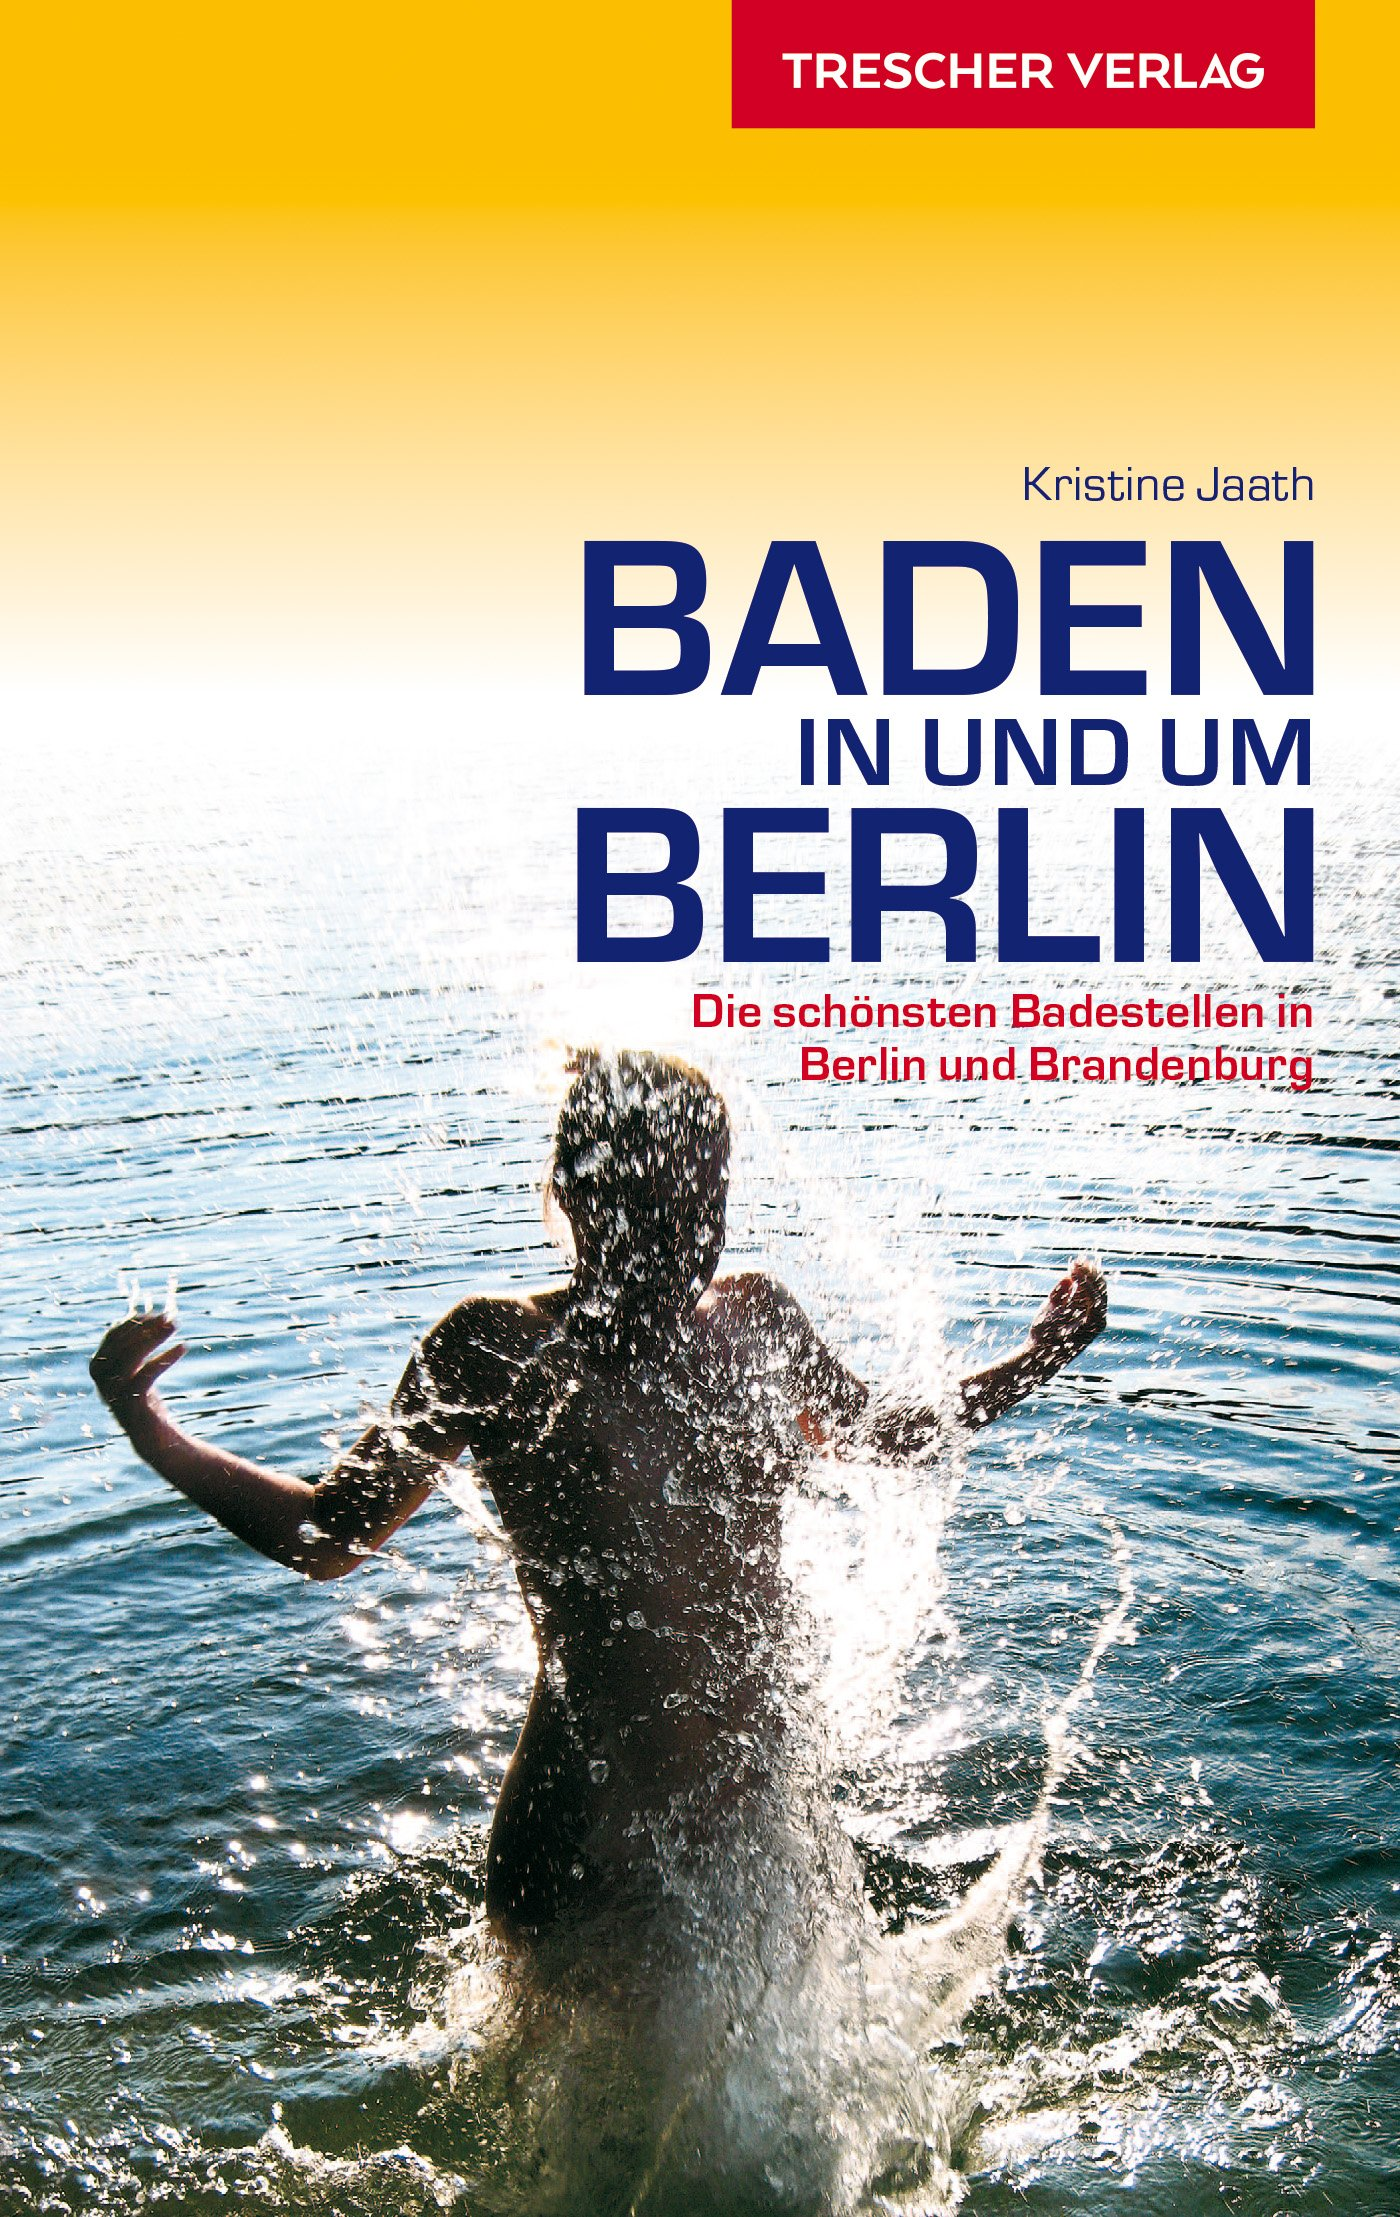 Baden in und um Berlin, Kristine Jaath